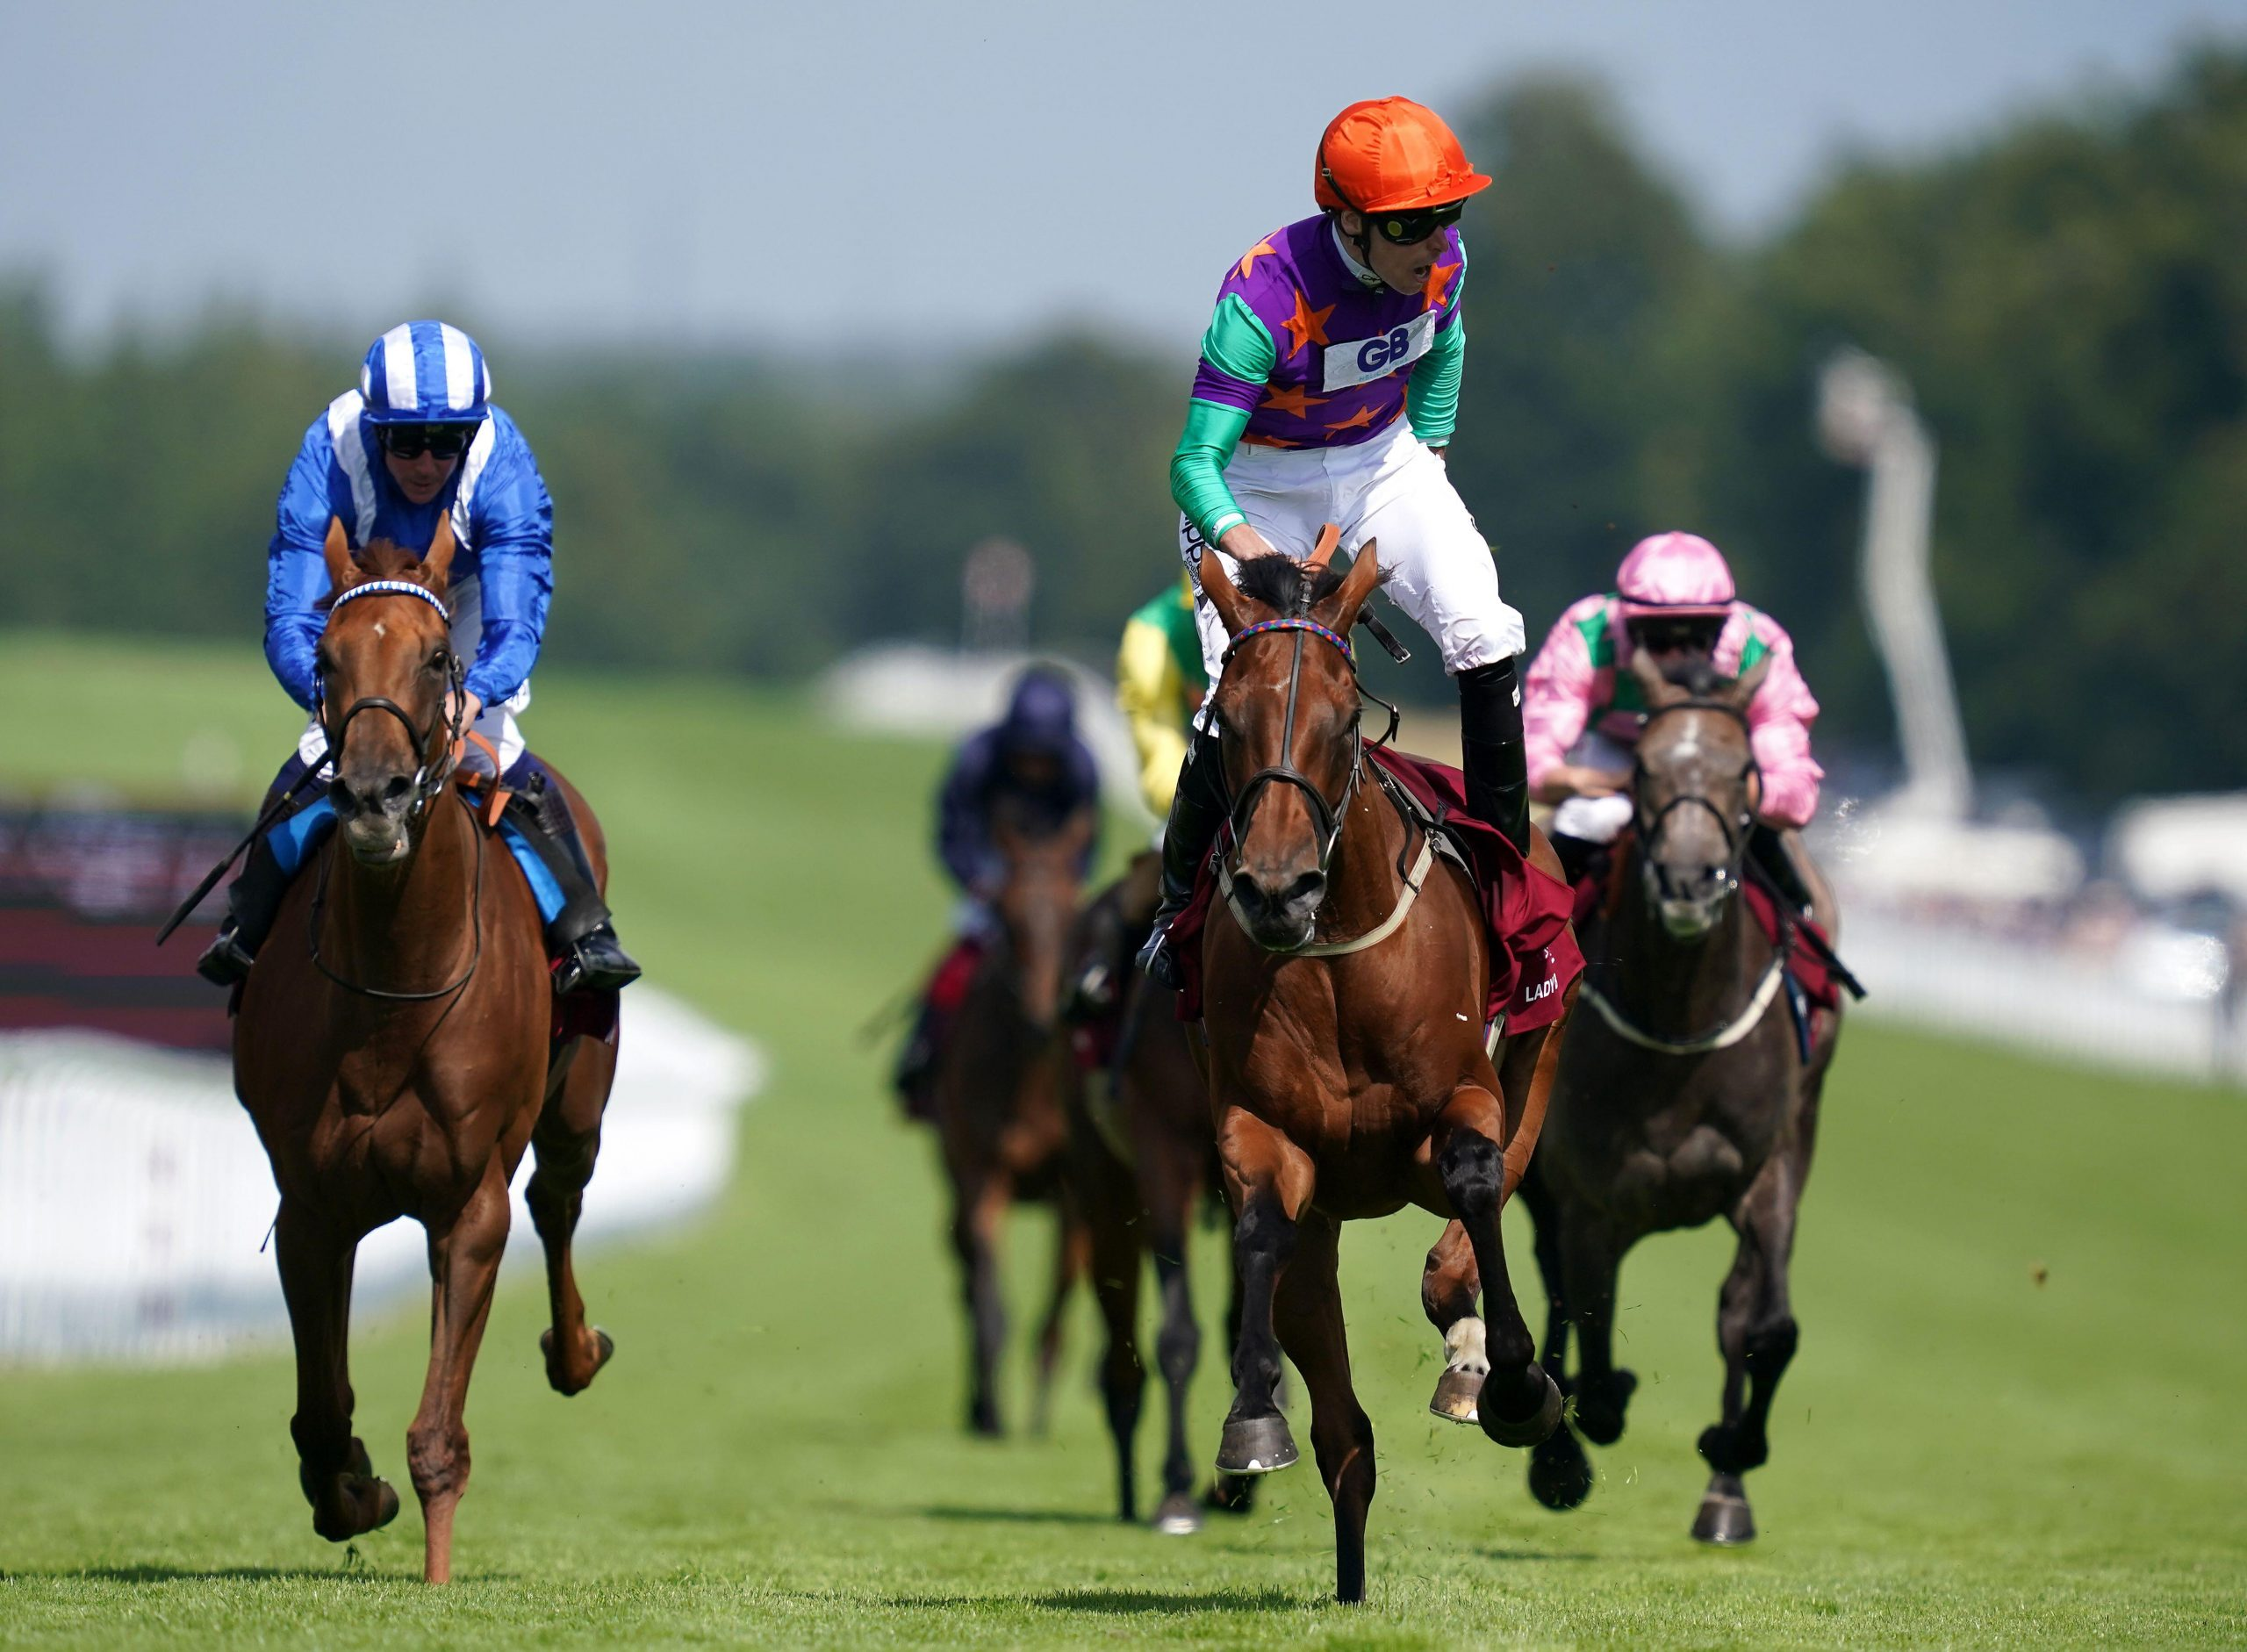 2GA7P0J Lady Bowthorpe ridden by jockey Kieran Shoemark (right) wins the Qatar Nassau Stakes (Fillies' Group 1) (British Champions Series) during day three of the Goodwood Festival at Goodwood Racecourse, Chichester.